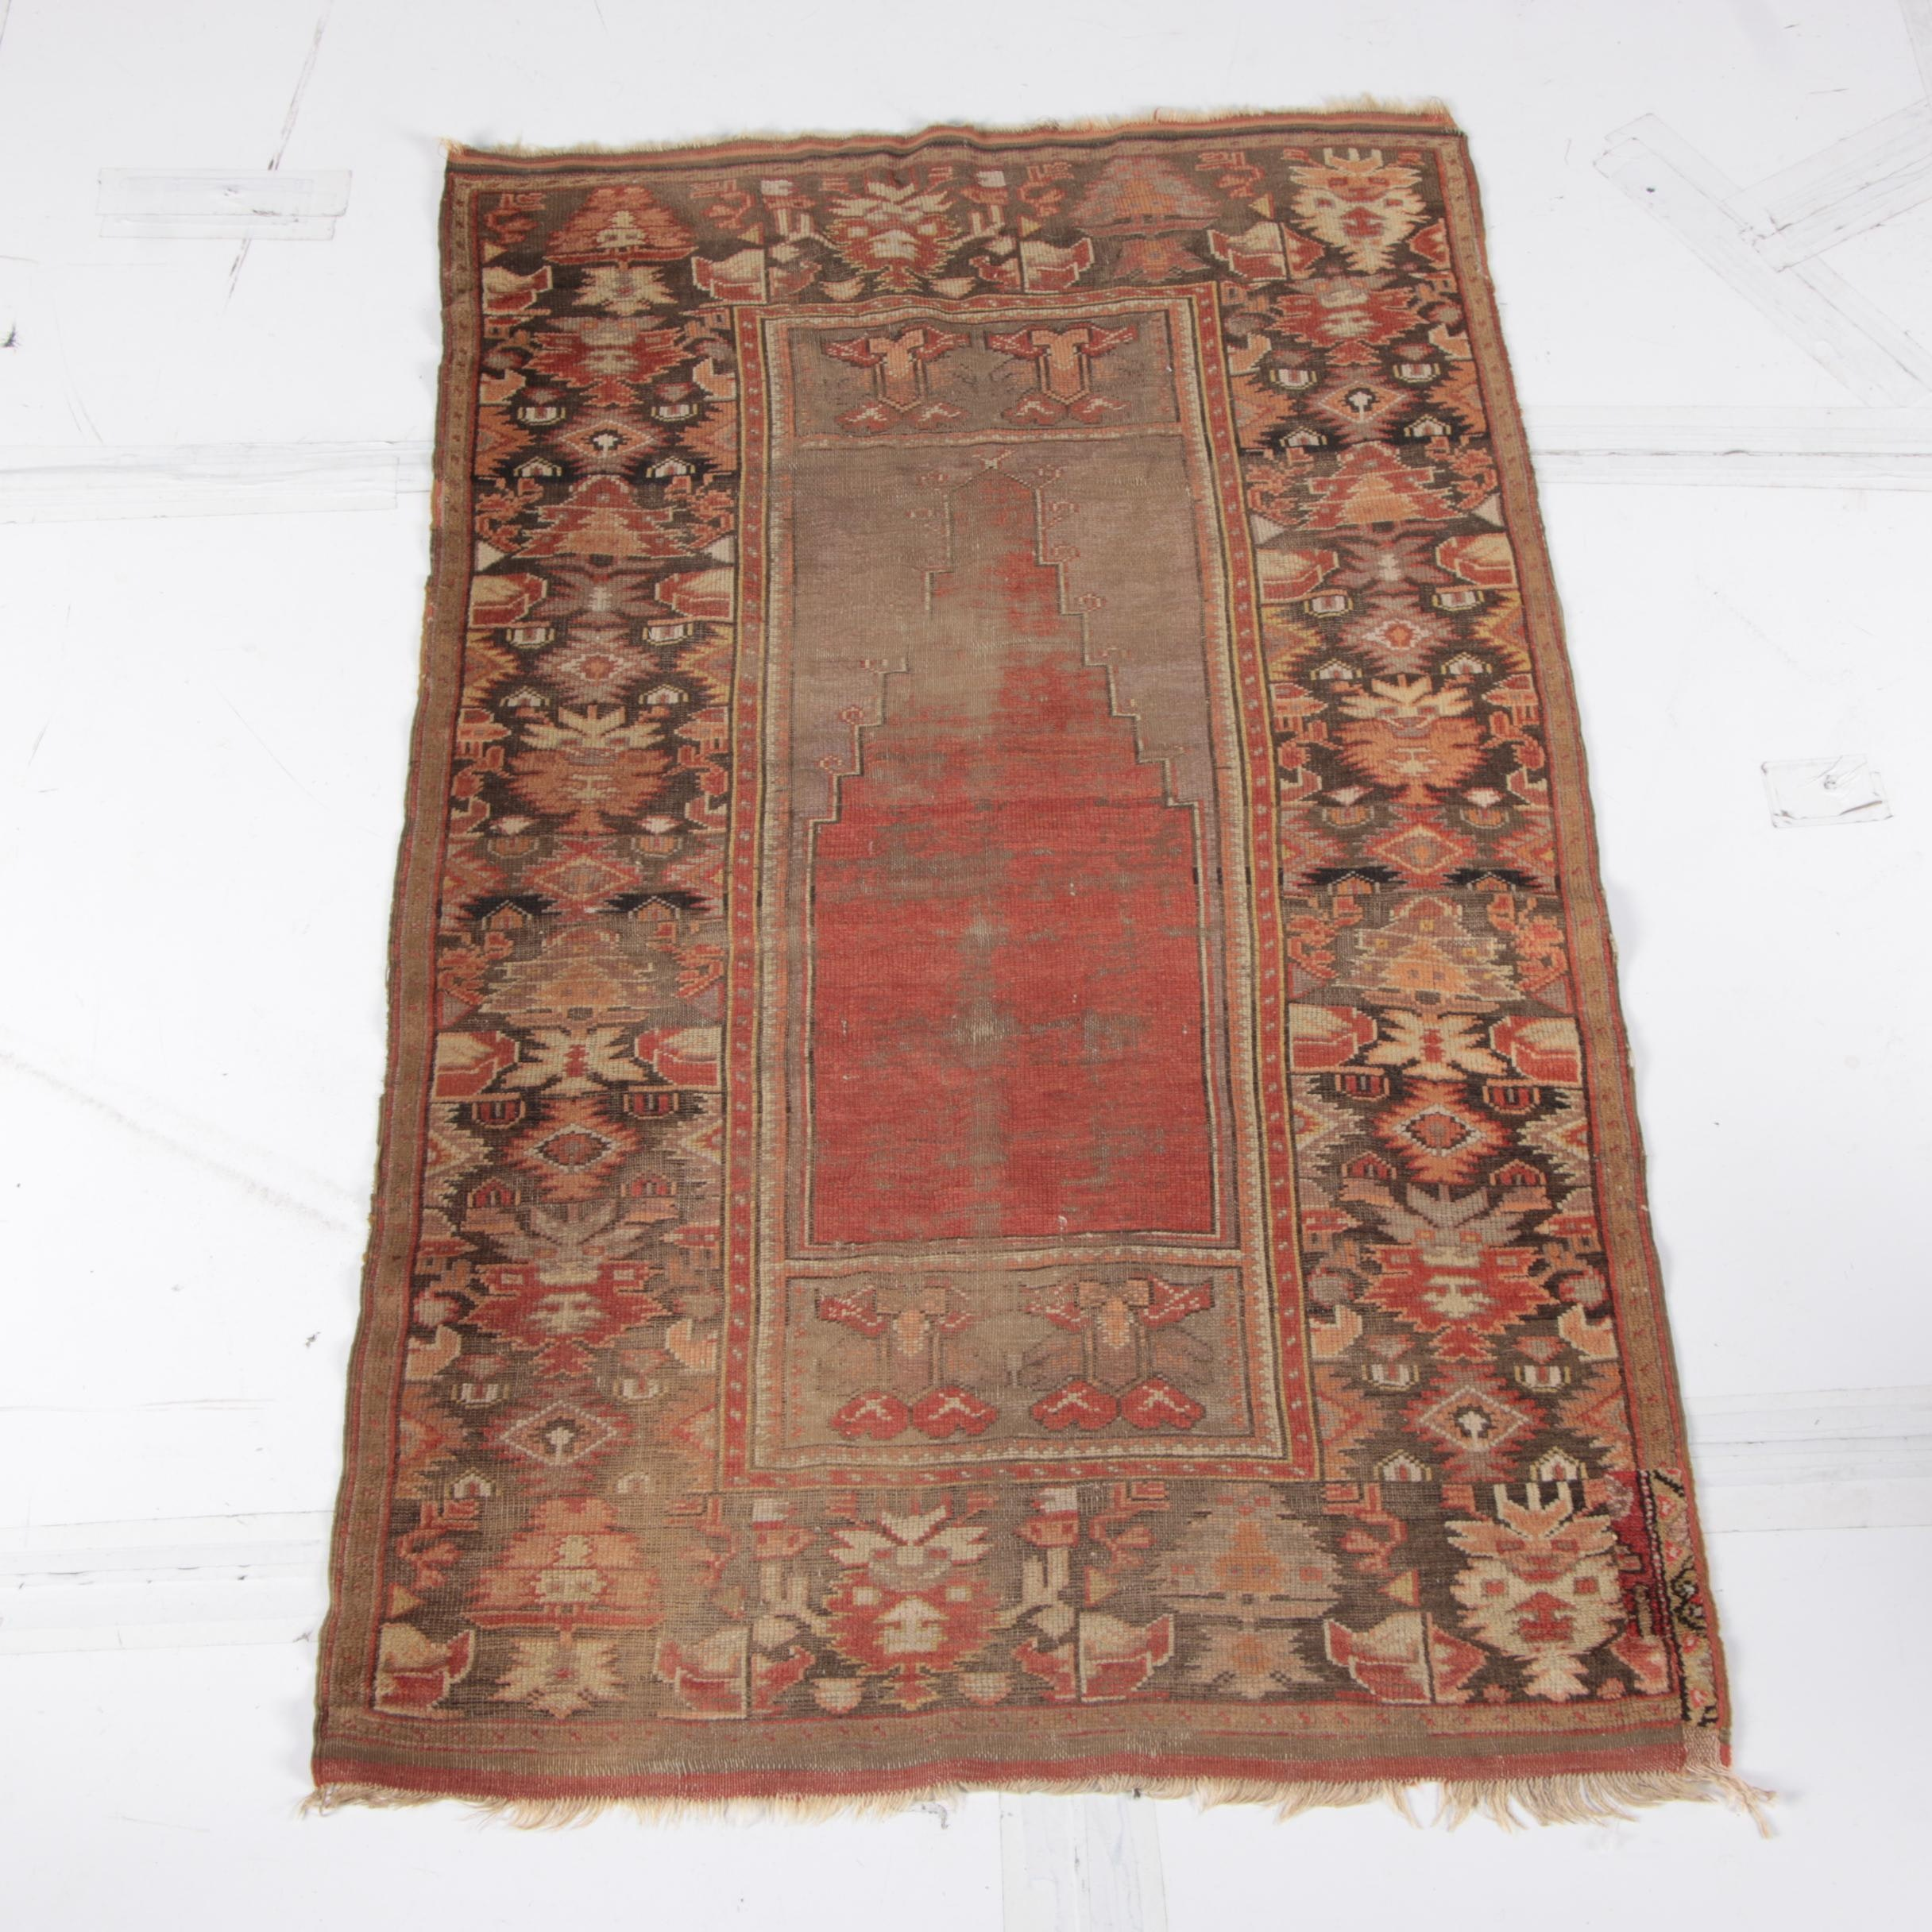 Antique Hand-Knotted and Woven Anatolian Prayer Rug